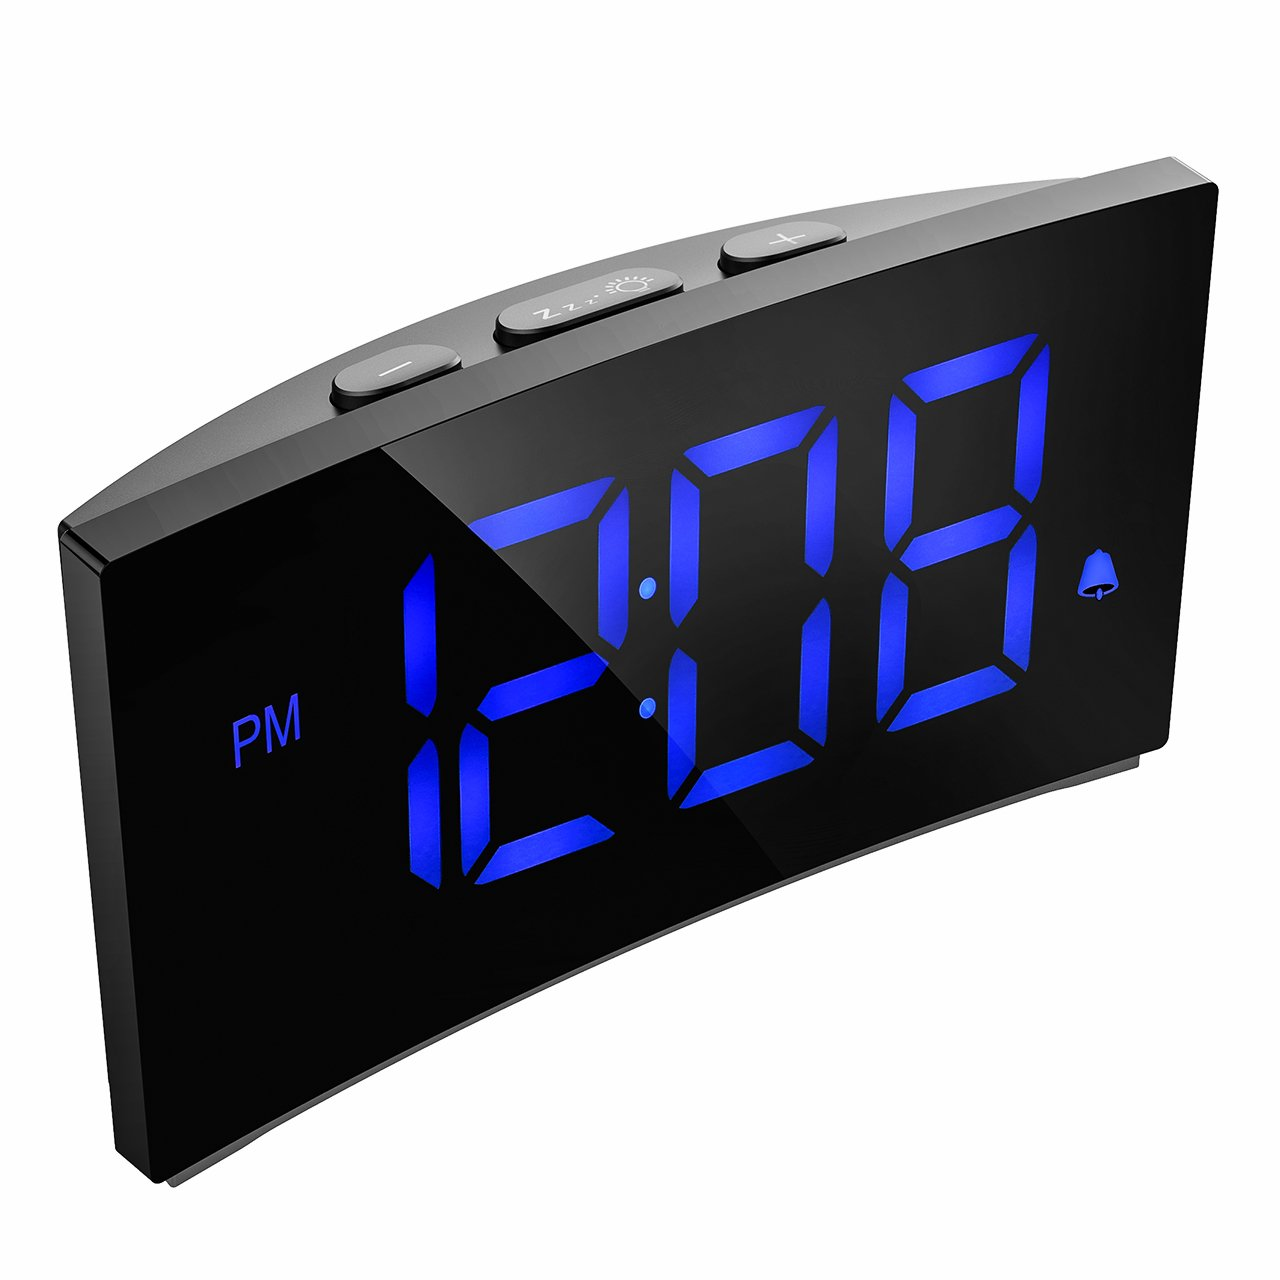 PICTEK Alarm Clock with 5-inch Dimmable LED Curved Screen, Kids Digital Alarm Clock with Snooze Function, 3 Alarm Sounds, 12/24 Hour for Bedrooms, Living Room, Office (No AC Adatper) 250AB